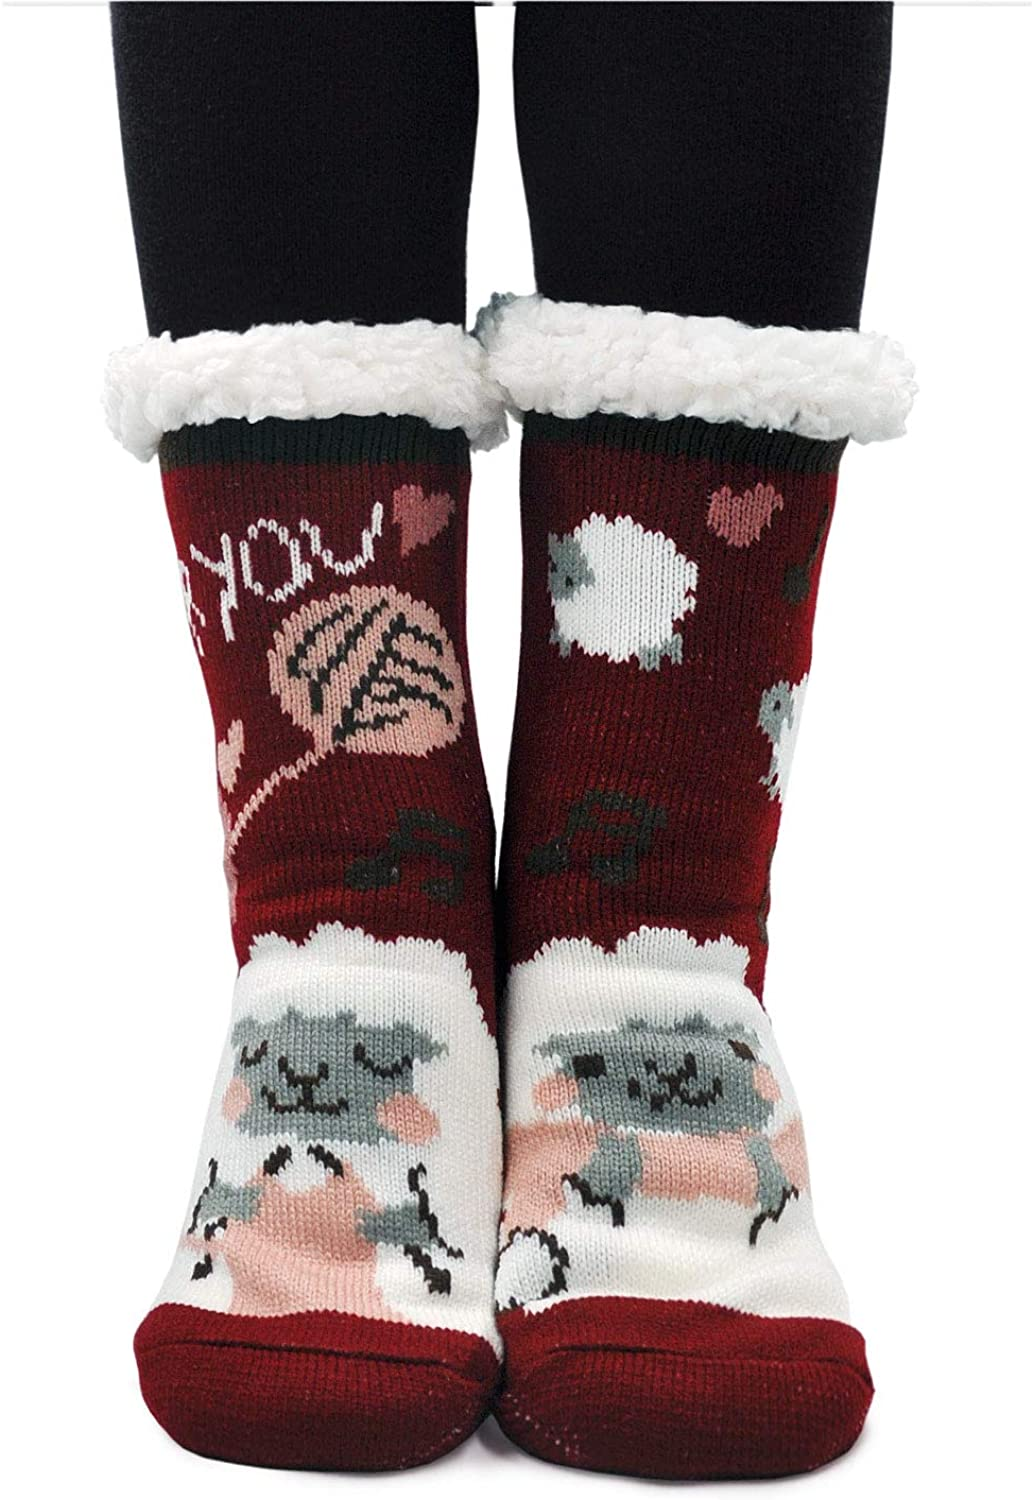 Womens Winter Slipper Socks,Cute Cartoon Animal Fleece-lined Christmas Socks with Grippers,Non-slip Home Socks